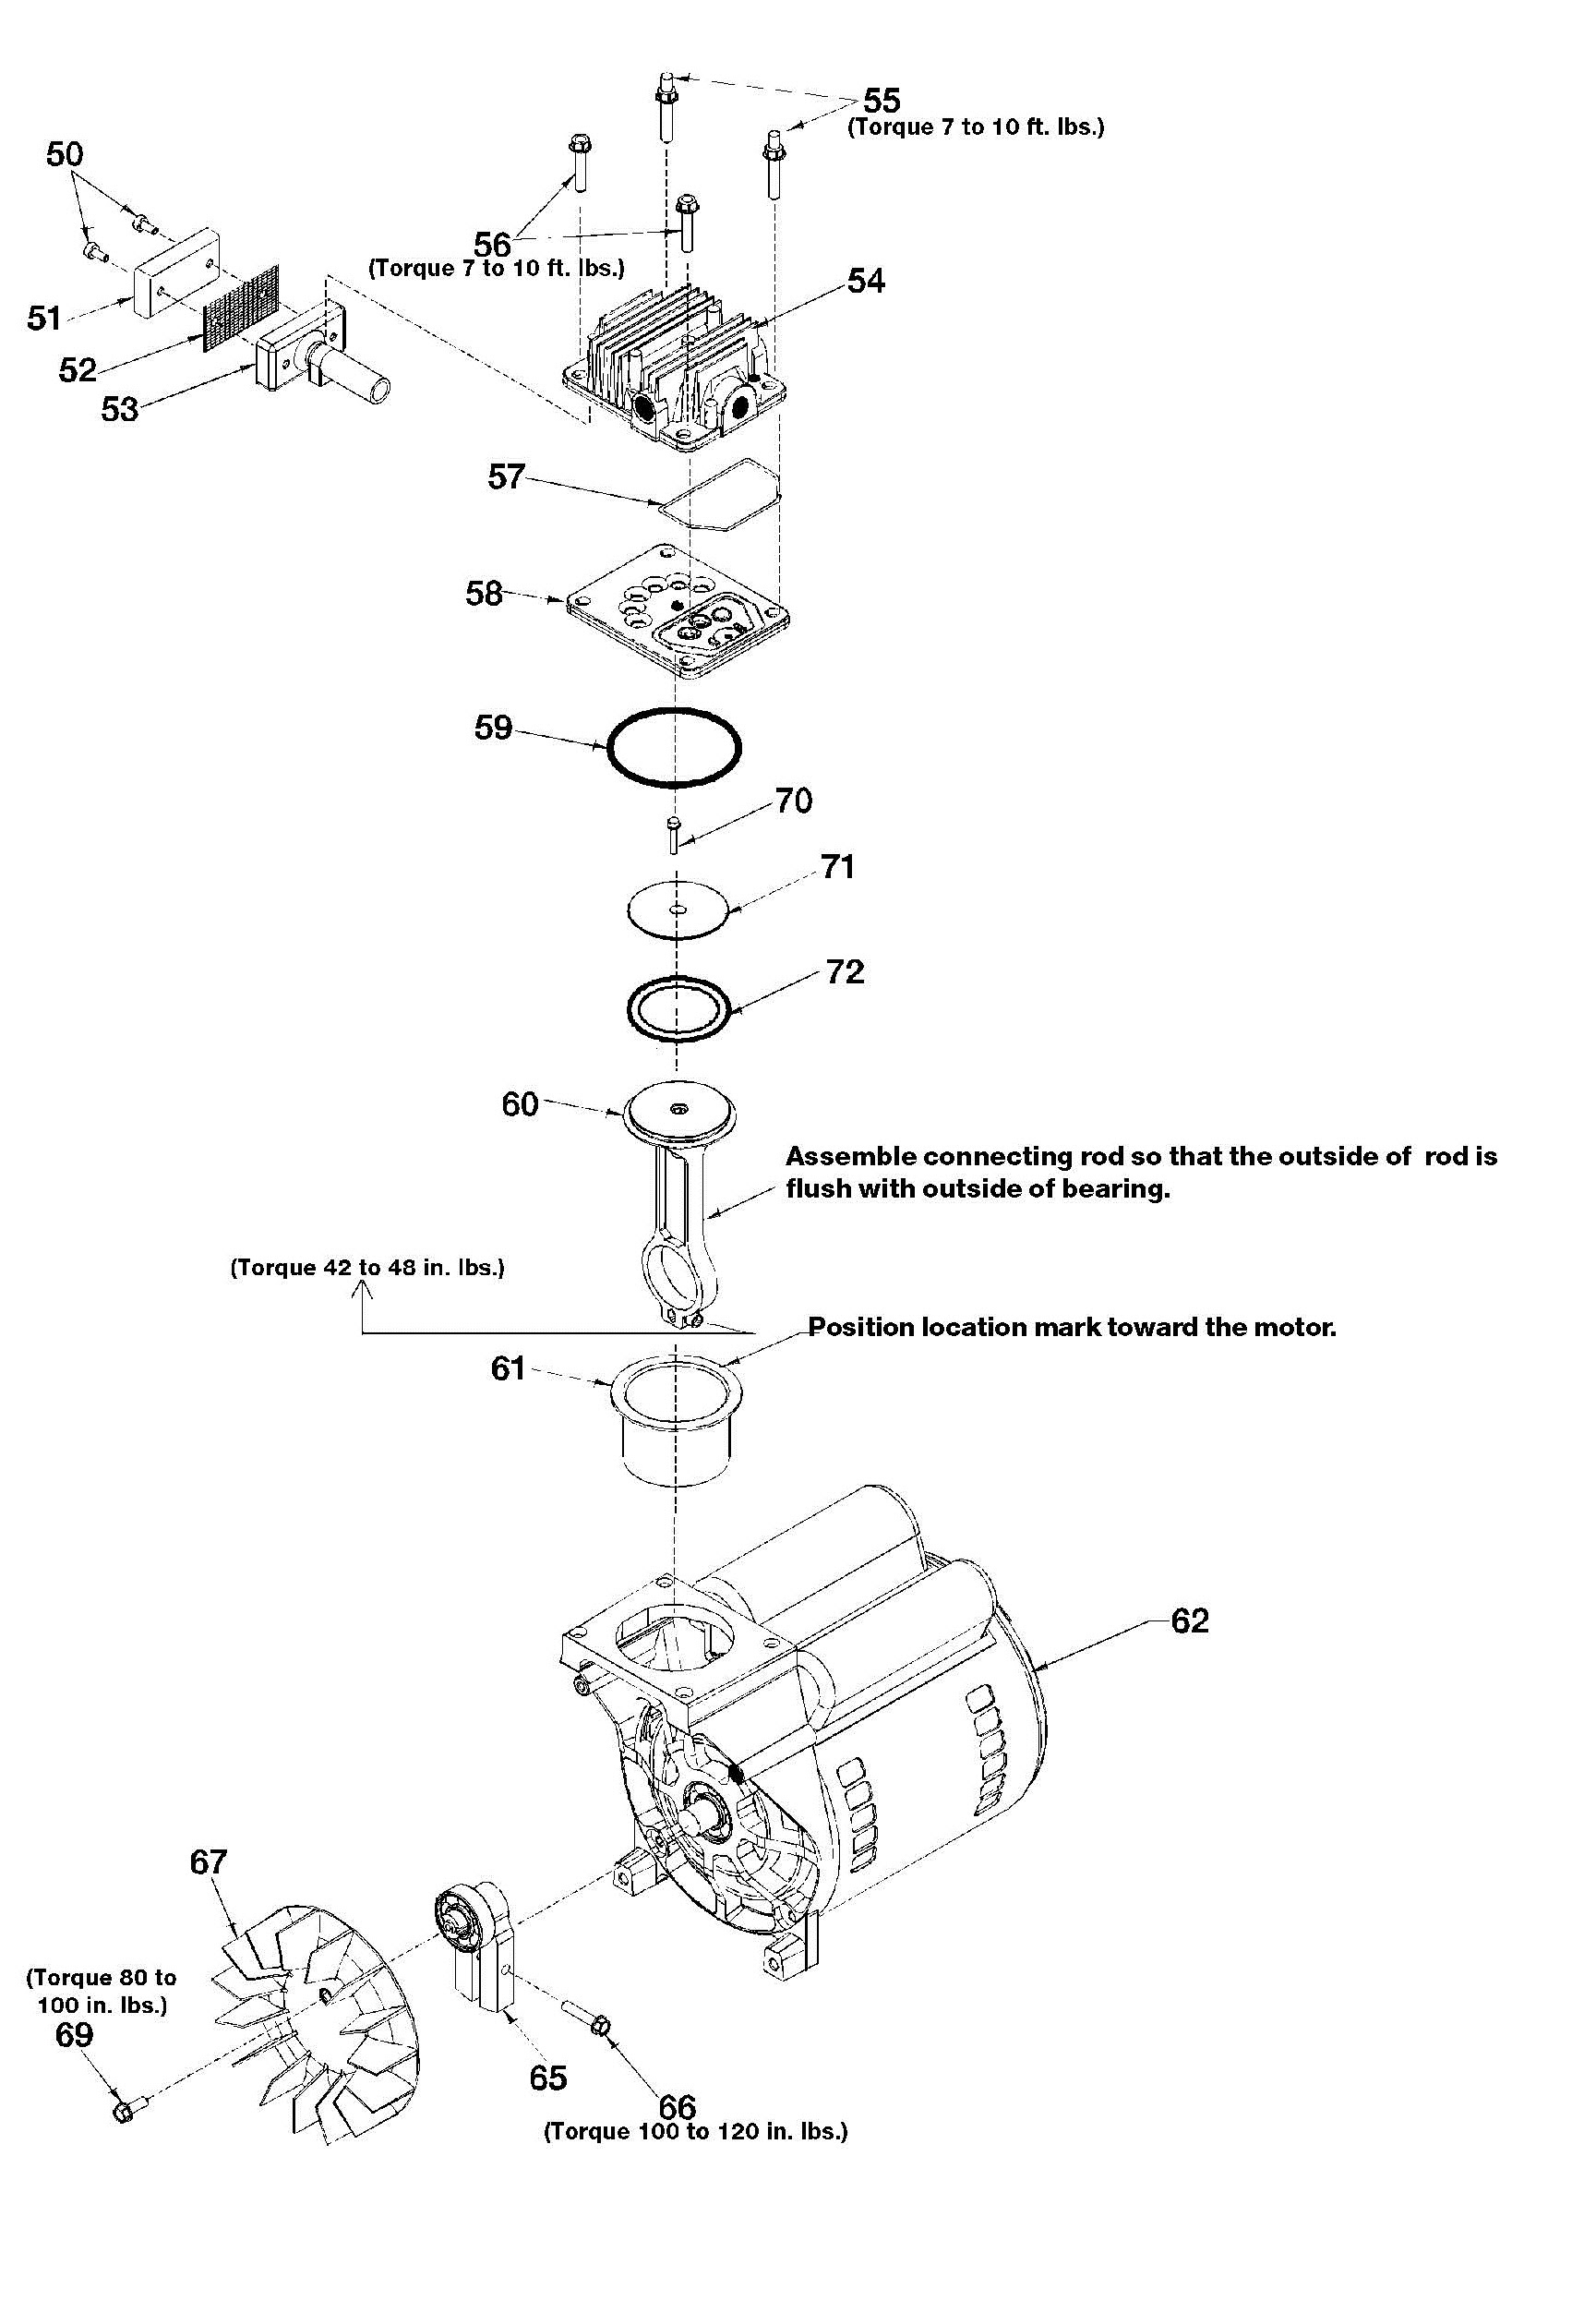 devilbis air compressor wiring diagram